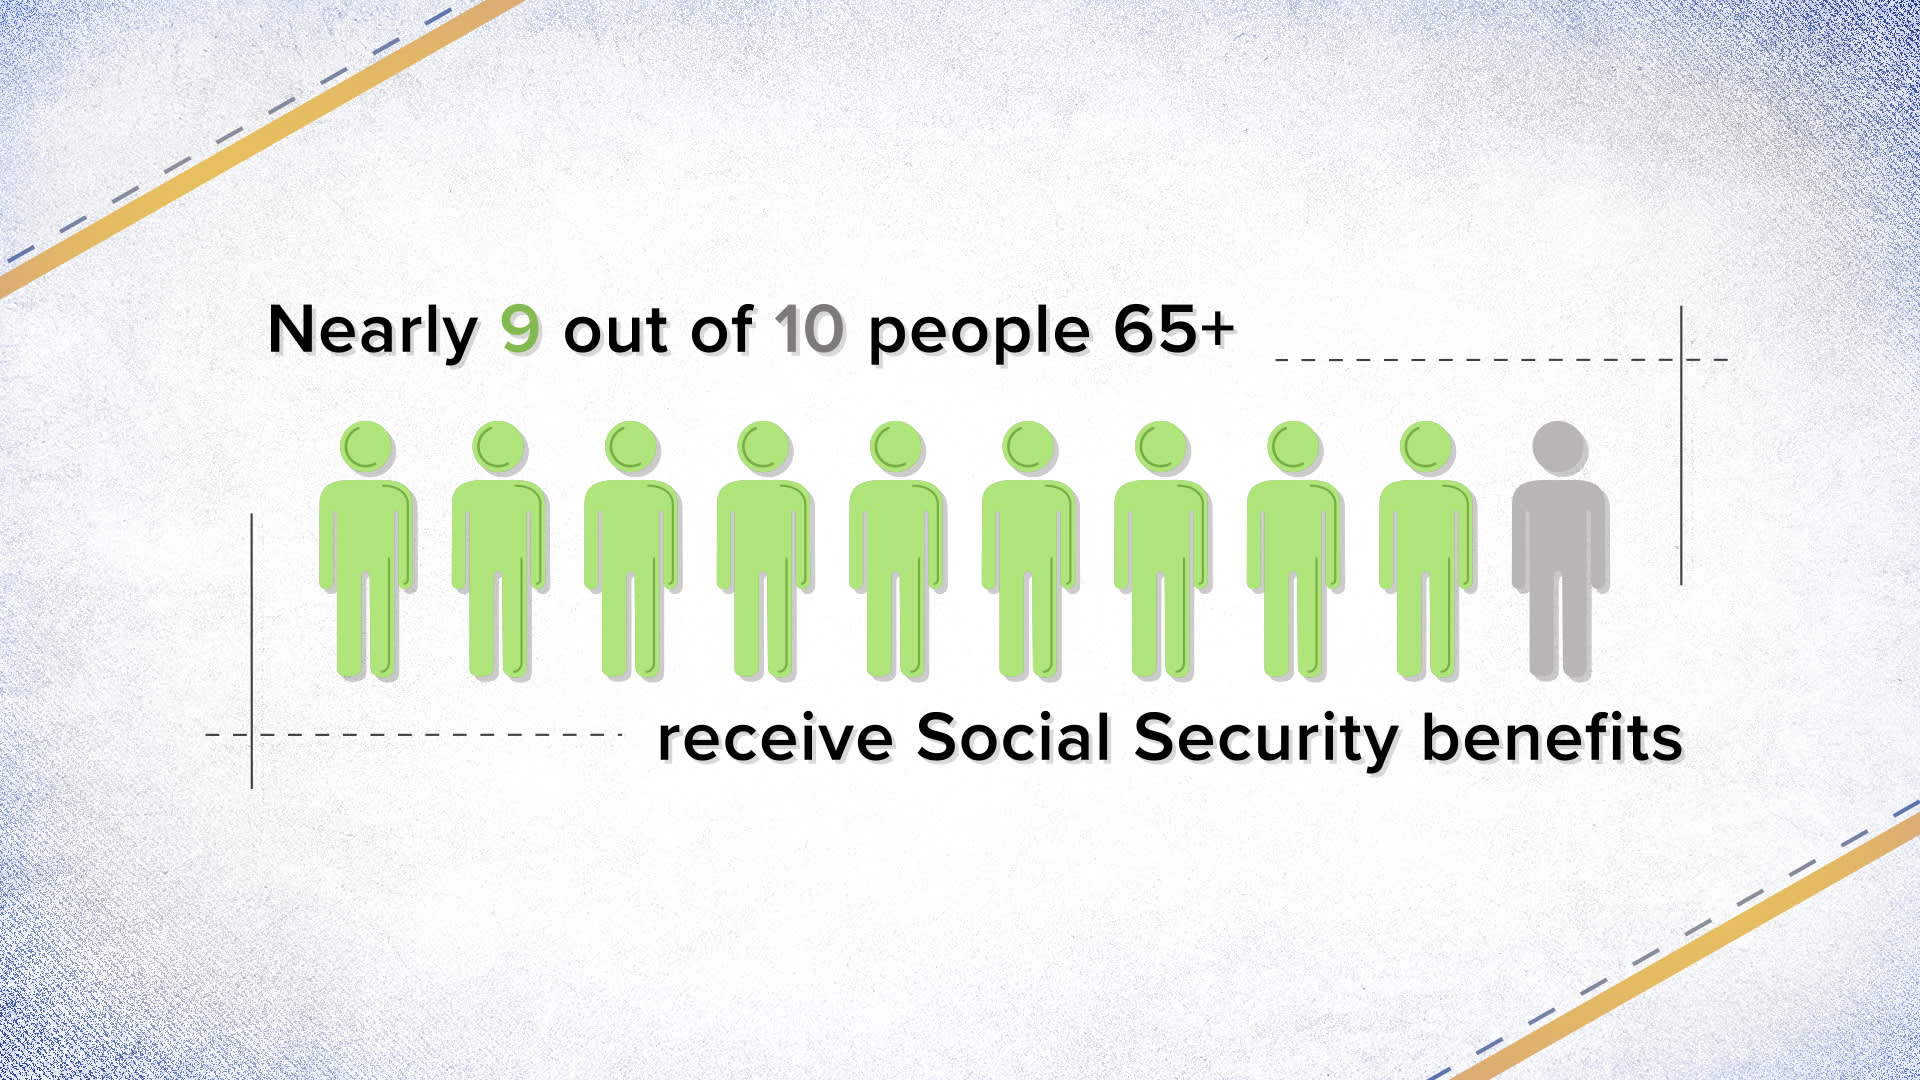 How much you can expect to get from Social Security if you make $50,000 a year